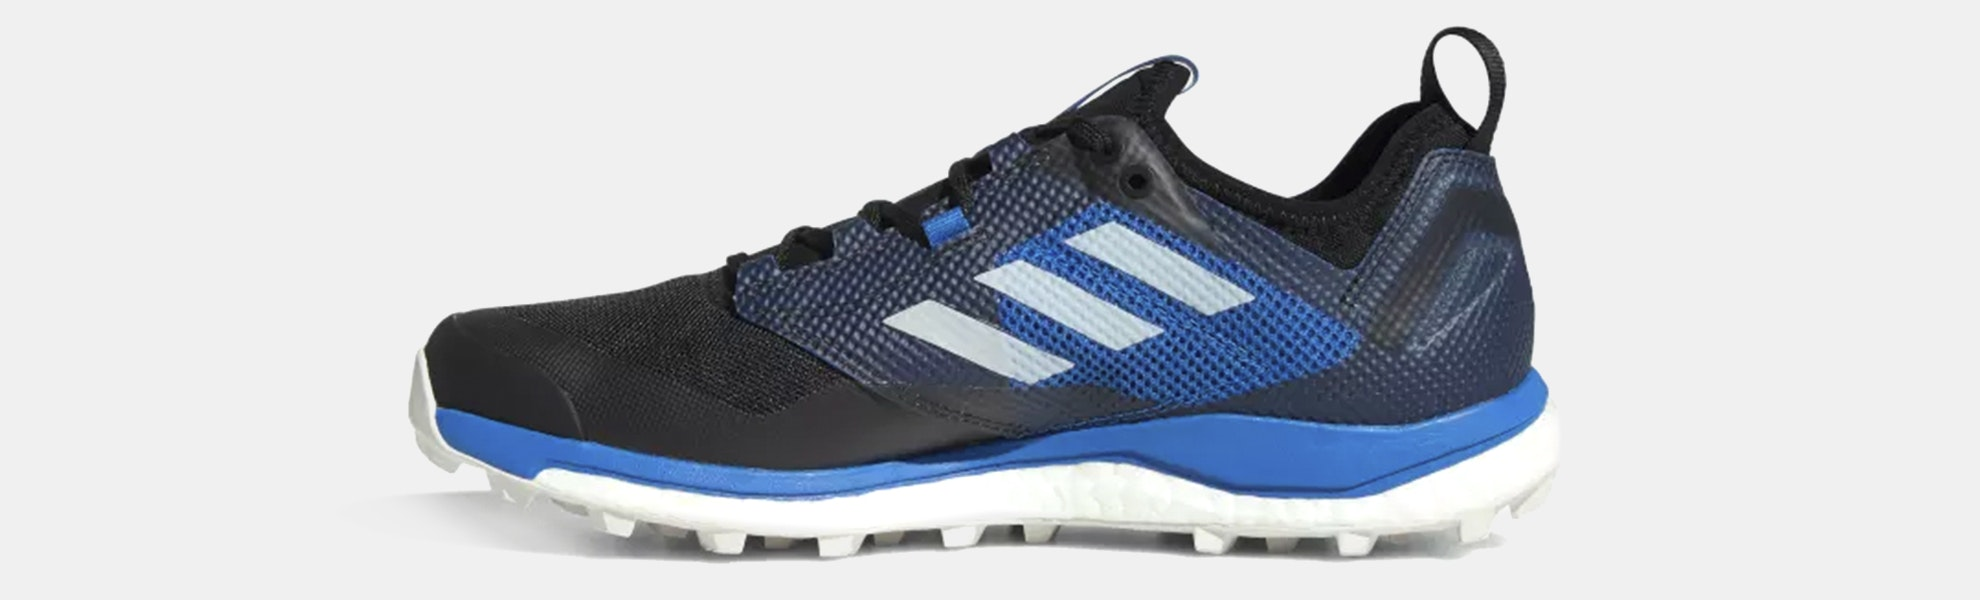 Adidas Terrex Agravic XT Men's Trail Running Shoes